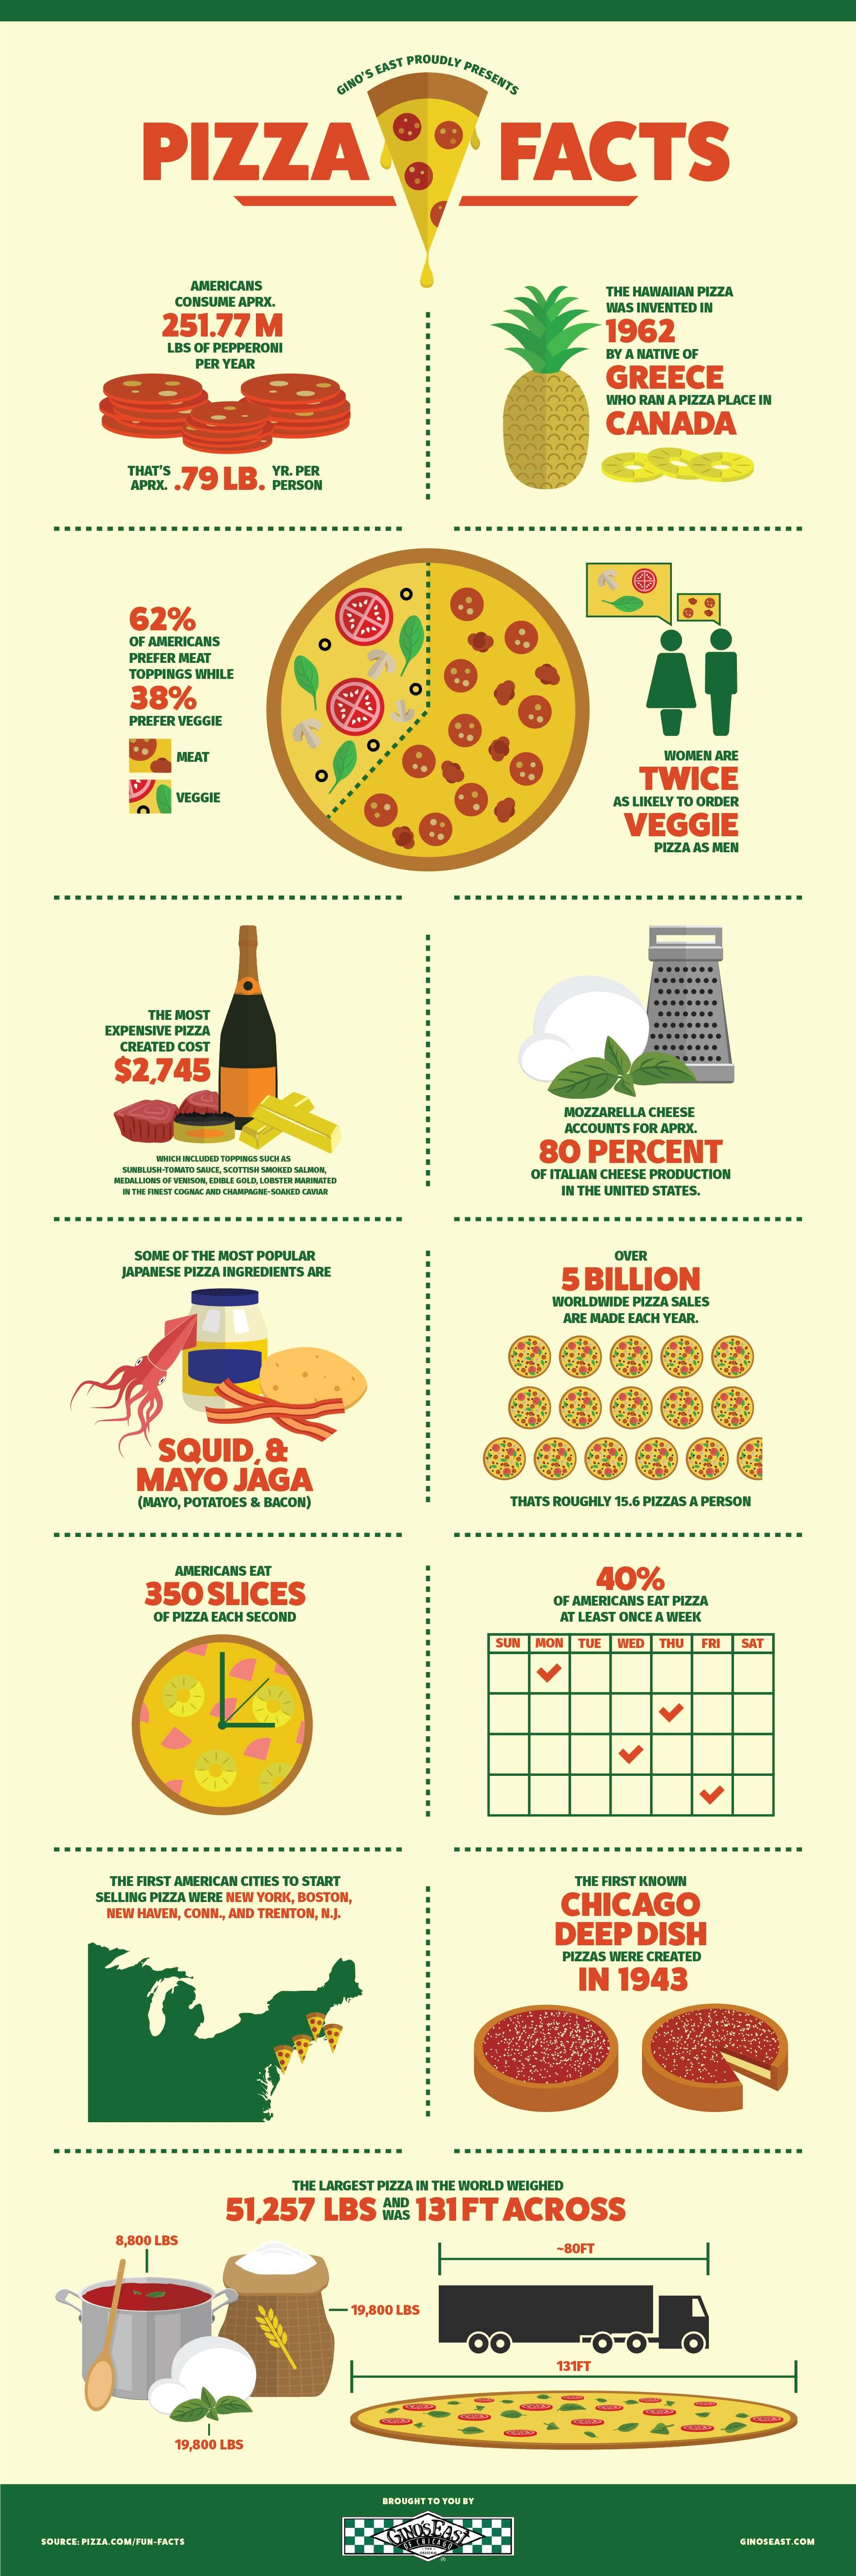 Ginos-Pizza-Facts-Infographic